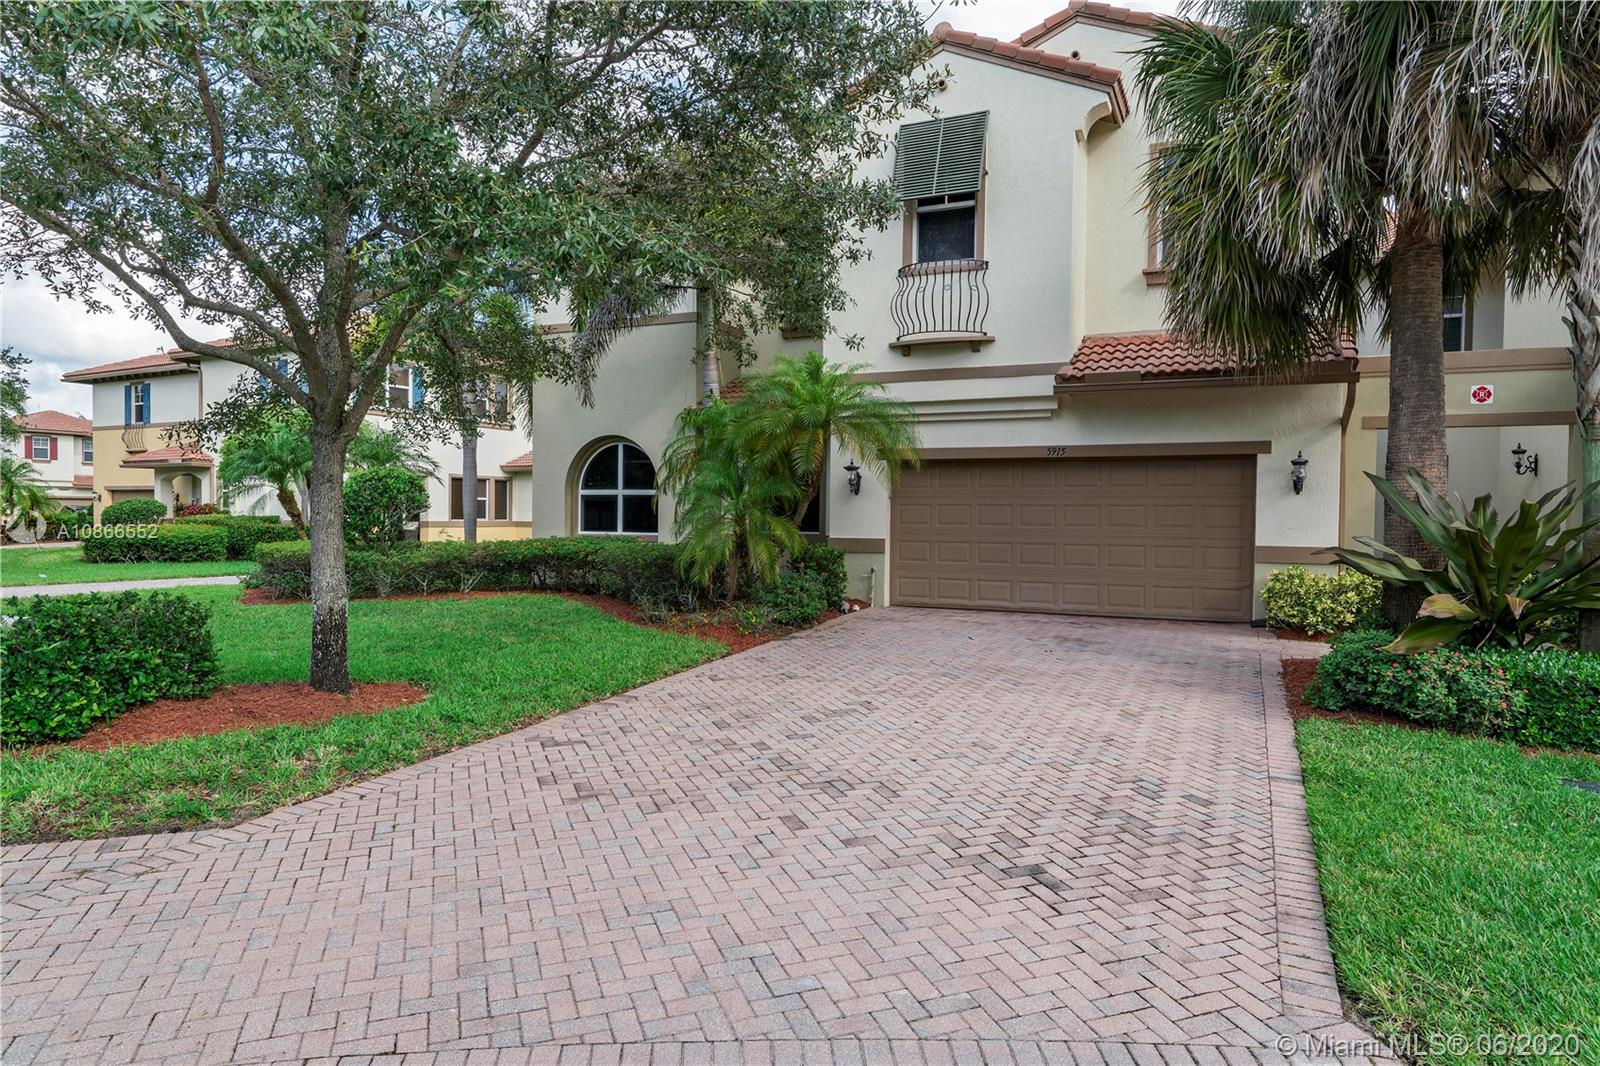 Live in a Prestigious Gated Community right on the boarder of North Coral Springs- Parkland! Most popular model and rarely on market! Close to all the action! Welcome to Heron Preserve located outside the south Heron Bay gate and walking distance to Publix plaza. Best location in CUL-D-SAC and only one available for a quick close!  Tastefully upgraded with Impact windows, granite counters, upgraded appliances,  hard woof floors, new ac and more! 4th bedroom is located off the master and makes for a great office, nursery or gym and ideal for today's world. Excellent Schools and North of Sawgrass Expressway.  Priced to Sell Fast and will not last long! Call listing agent foe details.  HOA covers Lawn, building exterior, Roof Repairs, Security and also includes pool, clubhouse and gym.